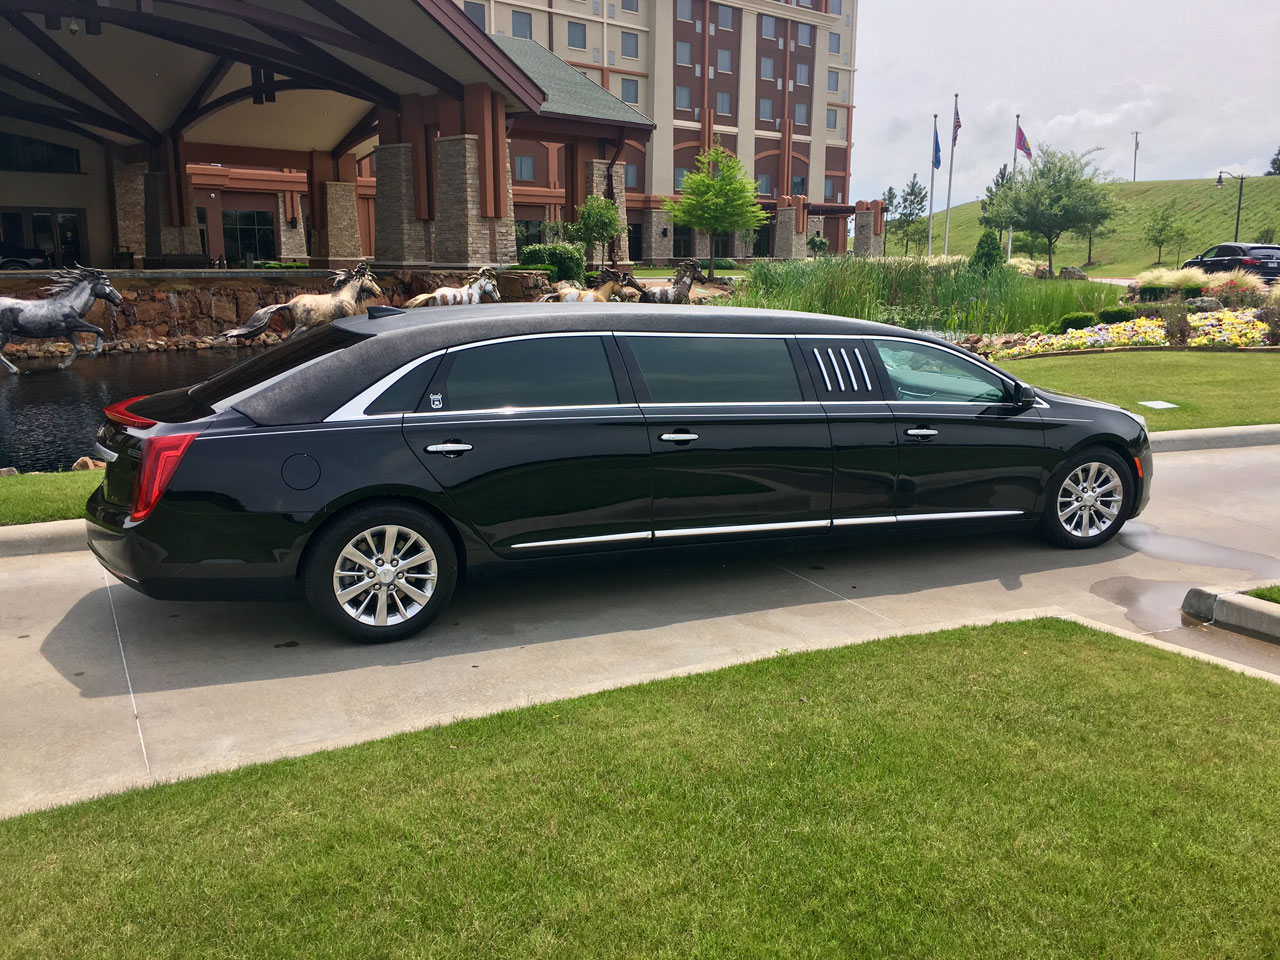 2019 Armbruster Stageway Cadillac 70 Stretch Limousine 8